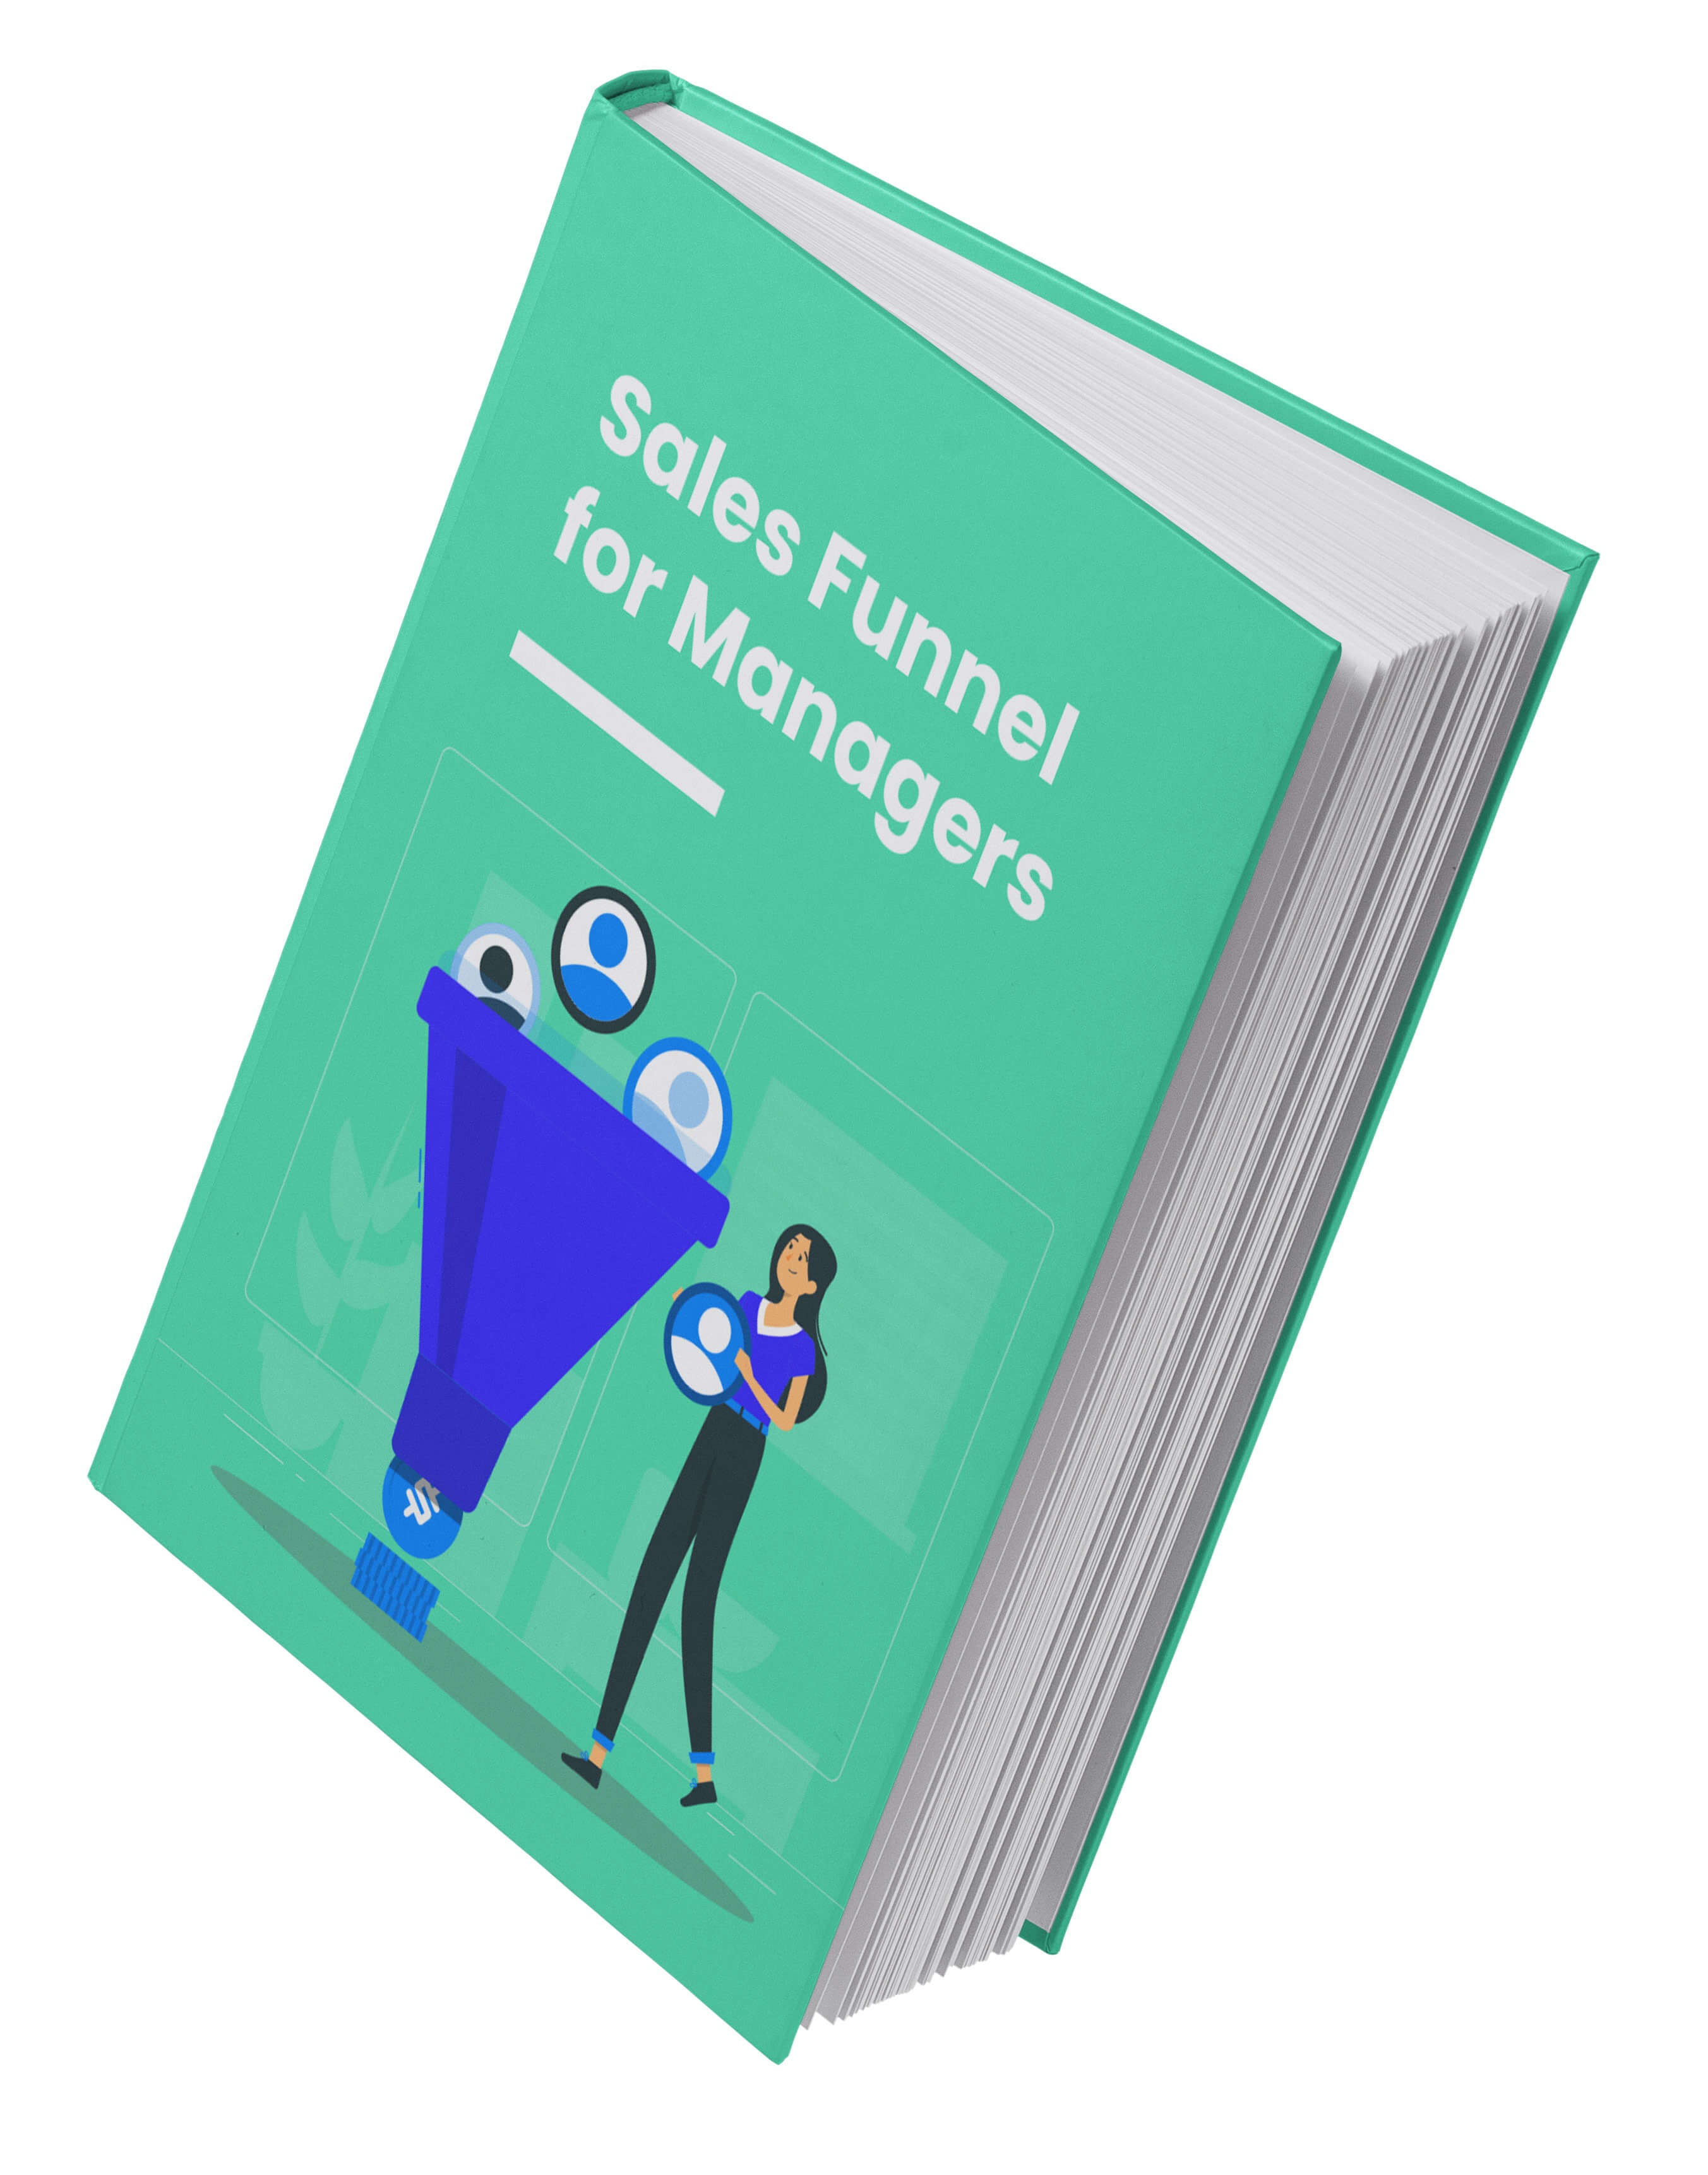 sales funnel for managers